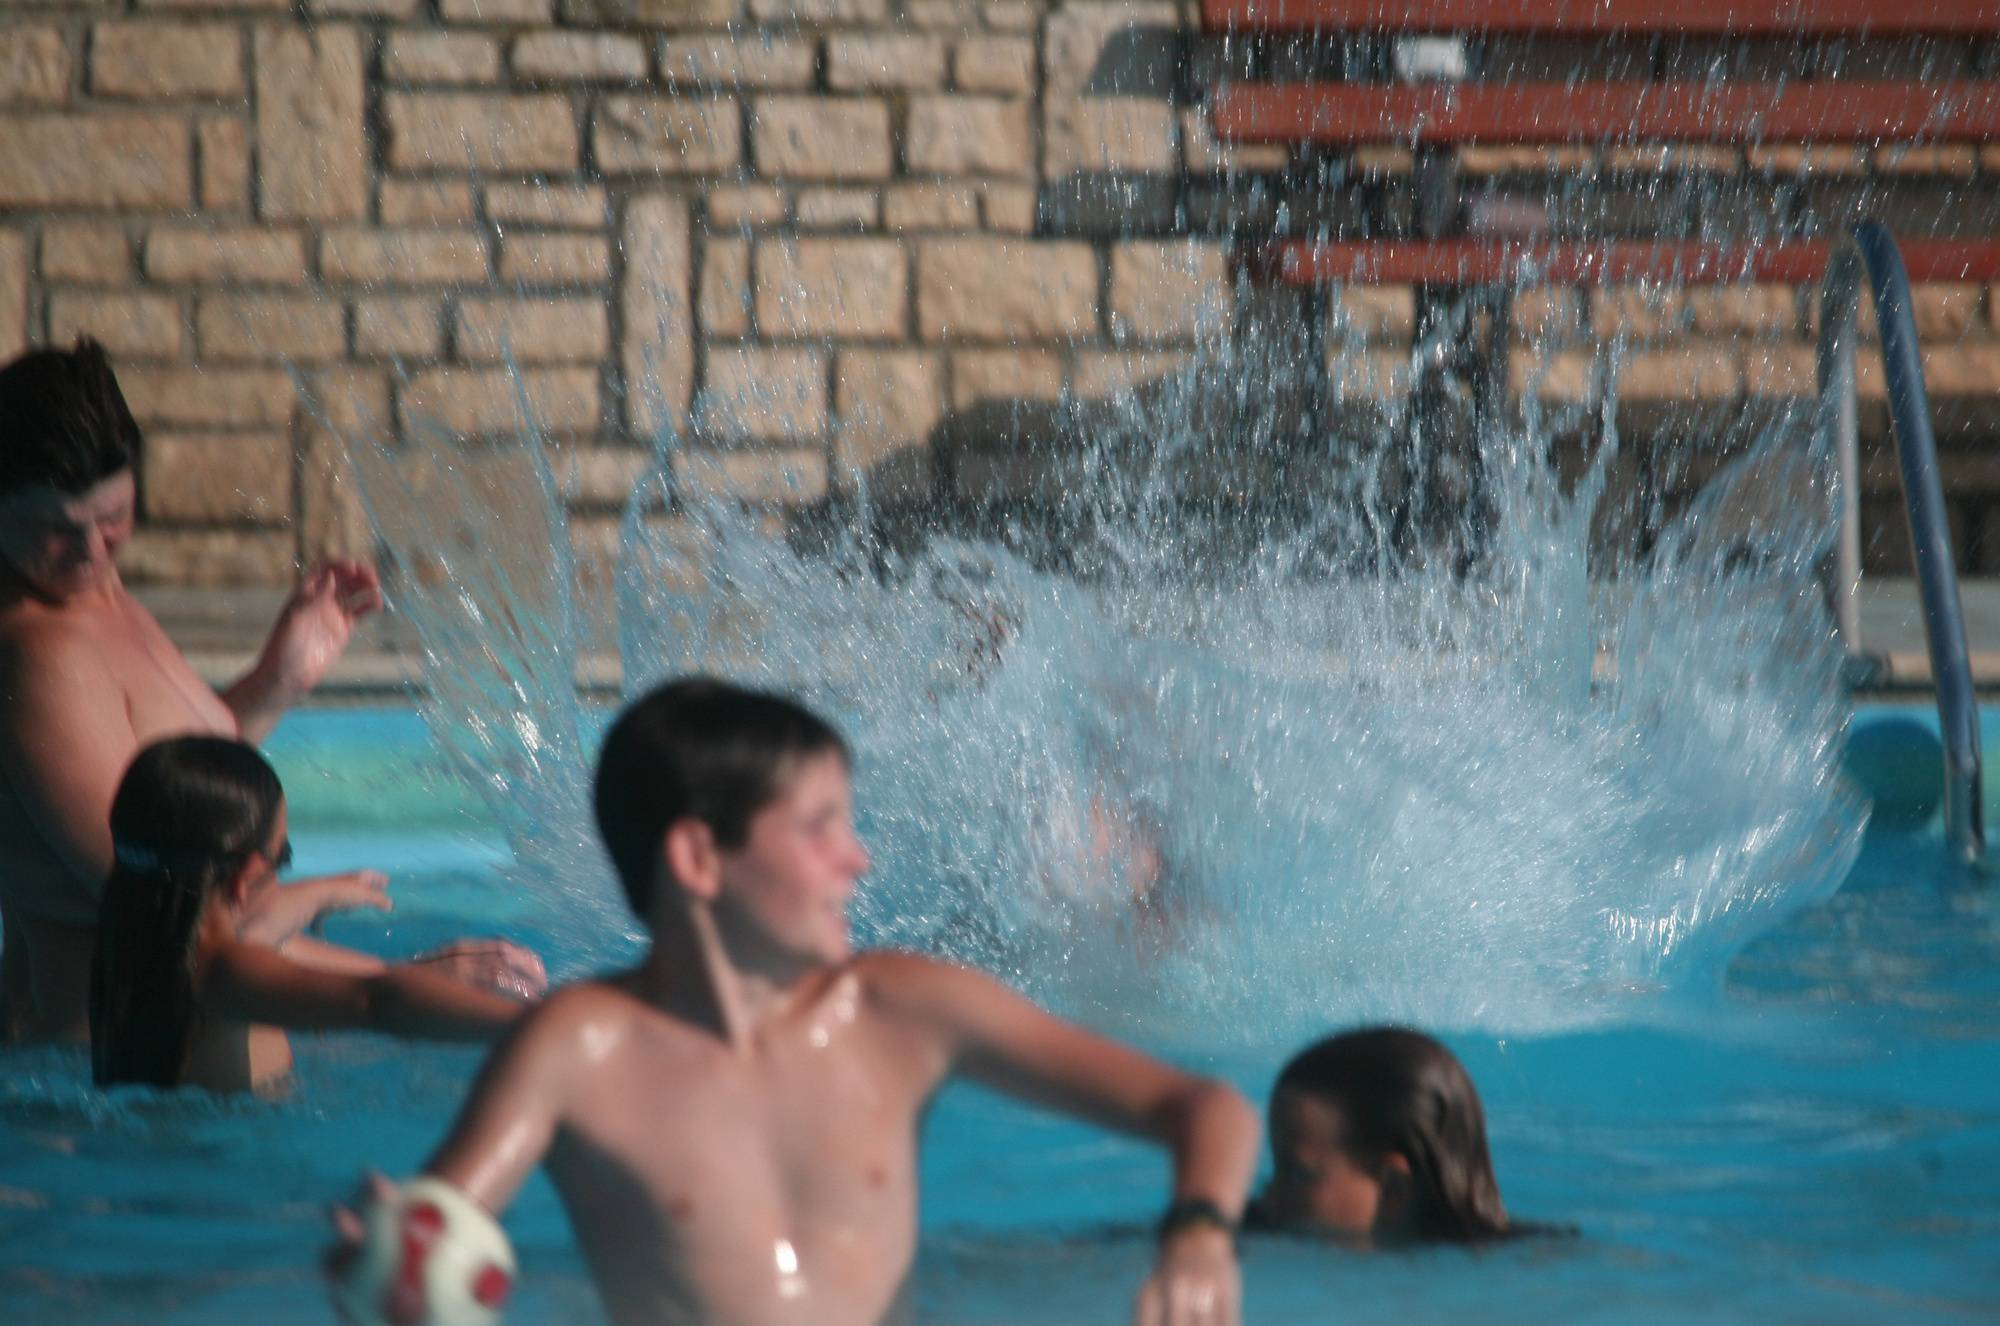 Purenudism Photos Nudist Pool Jumpers Two - 1